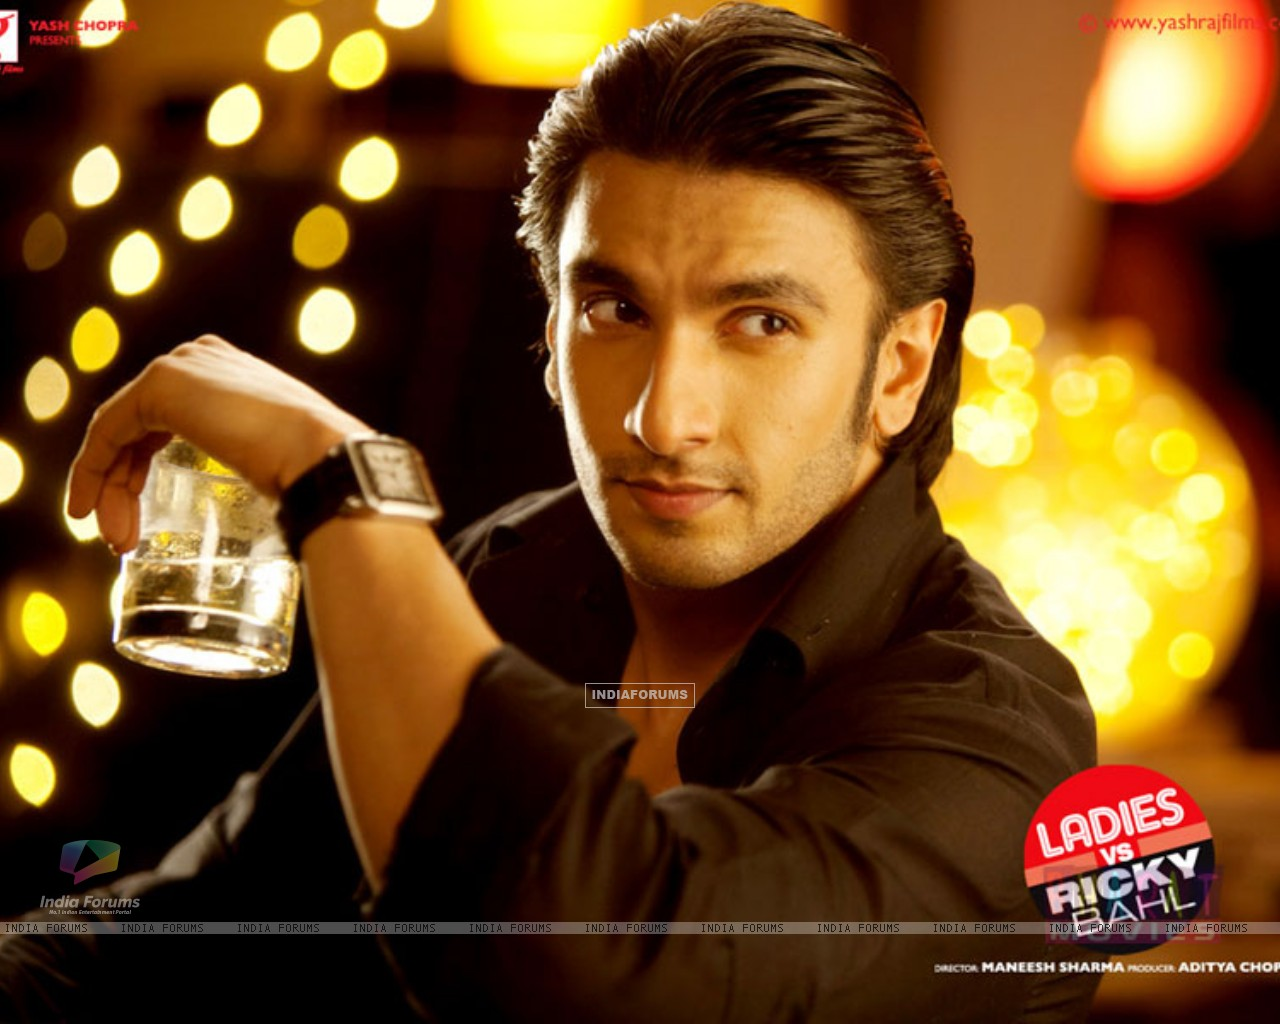 Ranveer Singh in the movie Ladies vs Ricky Bahl (173656) size:1280x1024